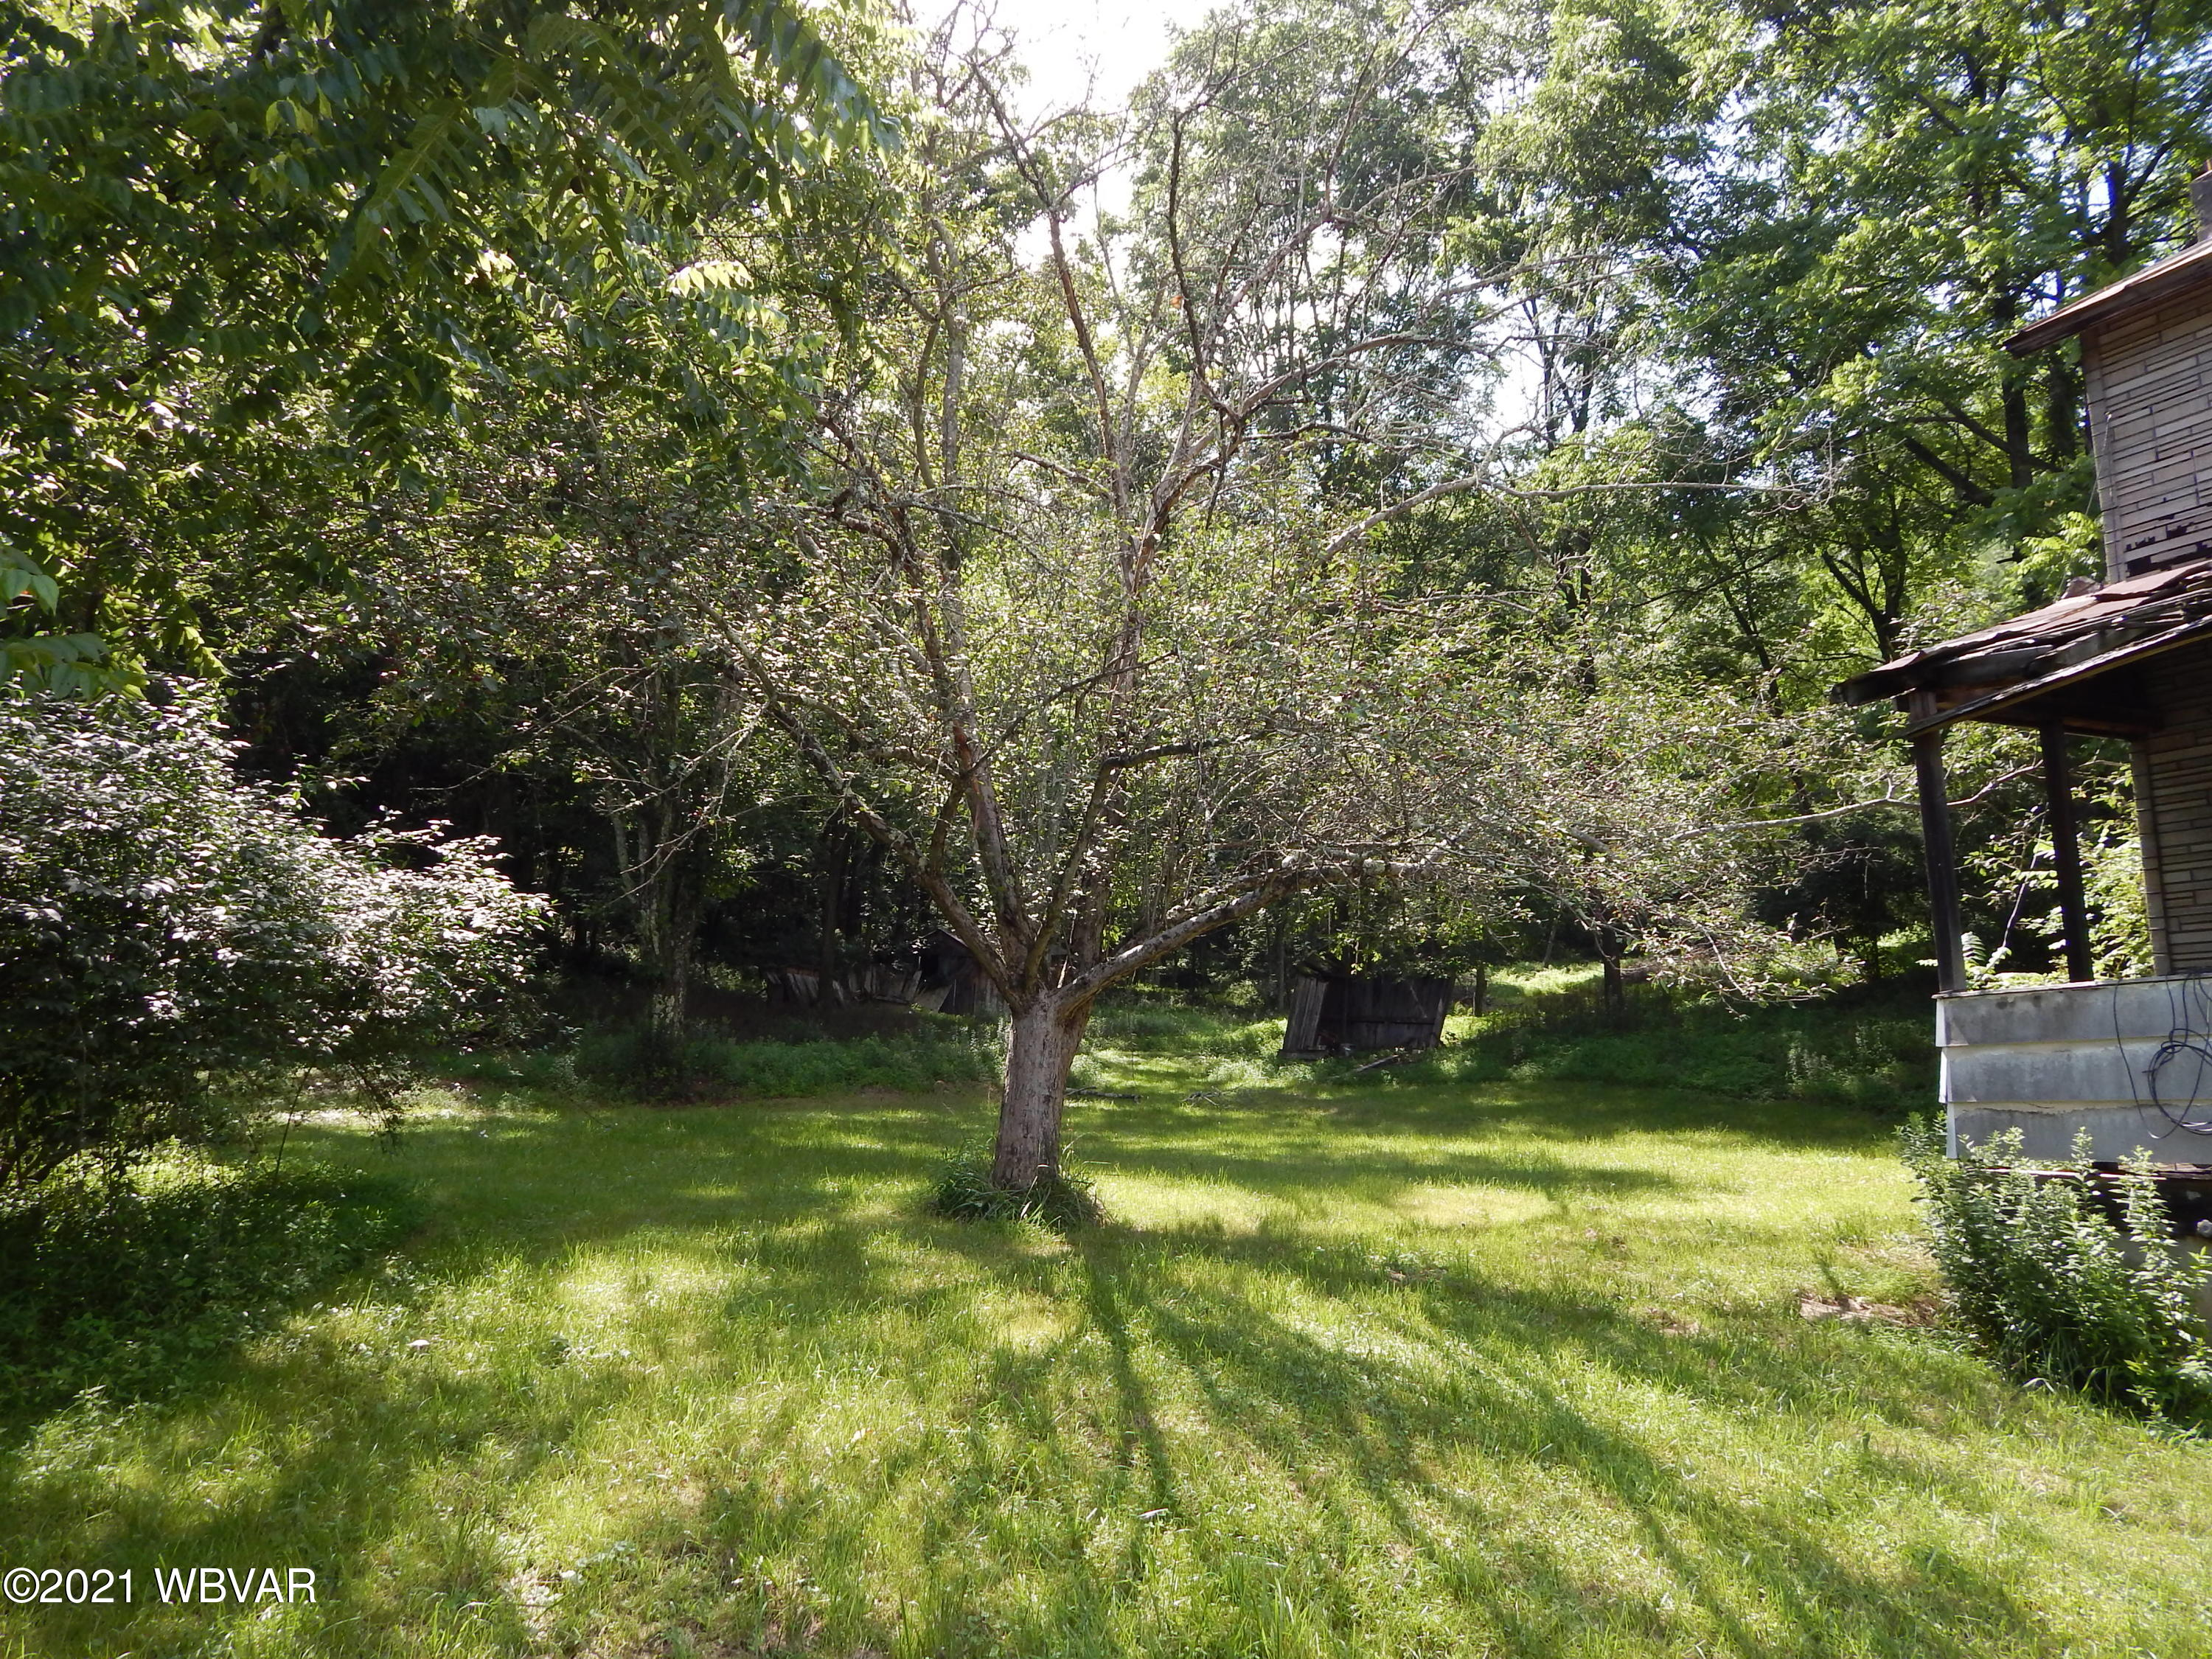 Yard and fruit trees